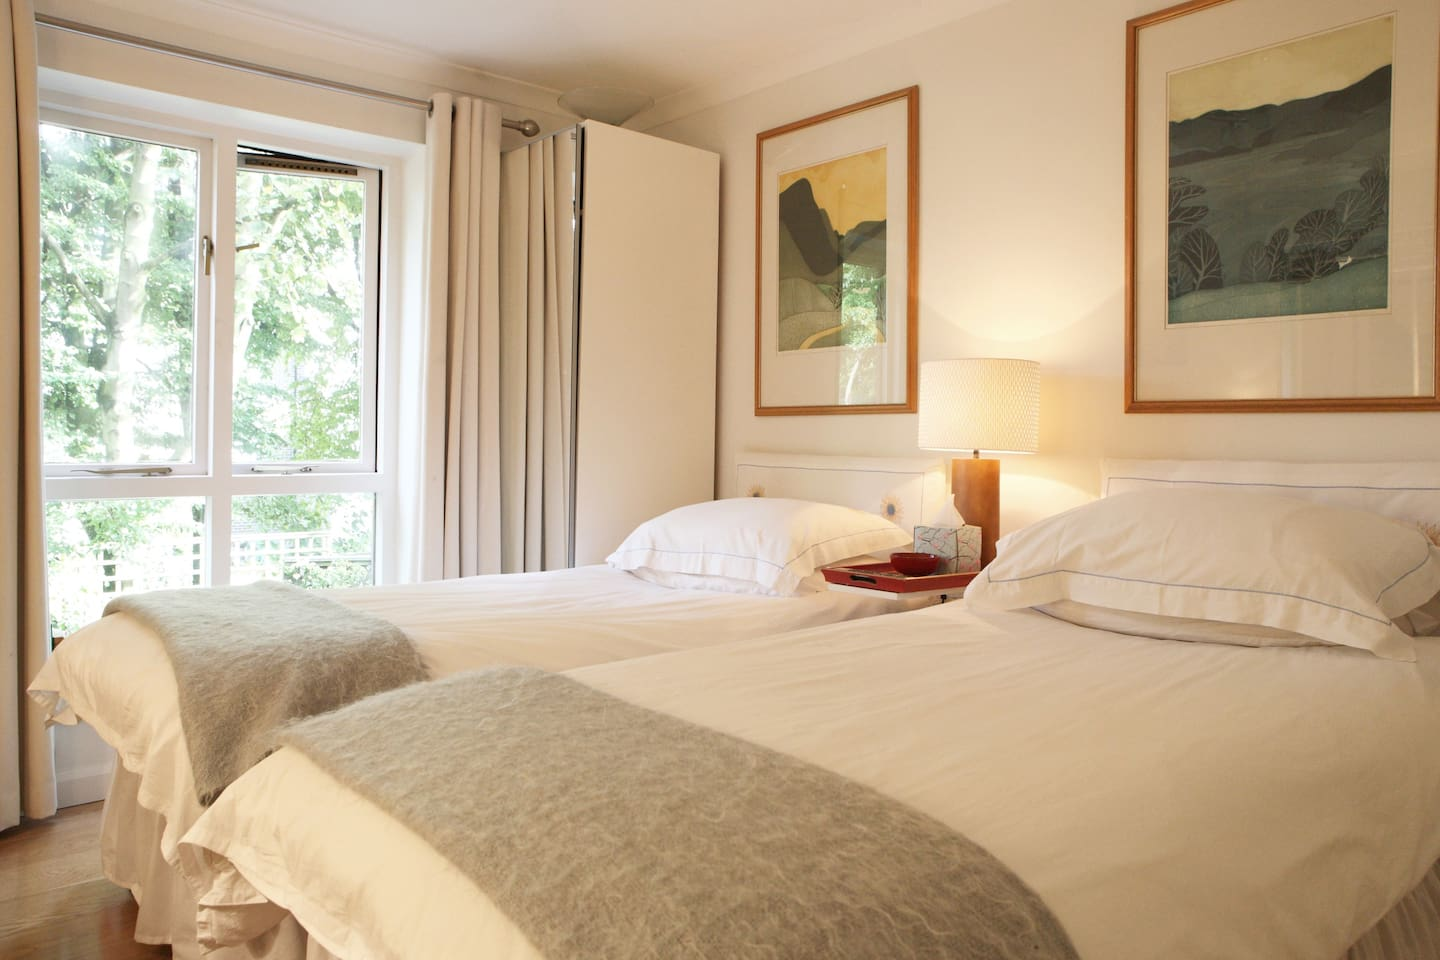 Two extremely comfy single beds. Cotton bedlinen and down pillows.